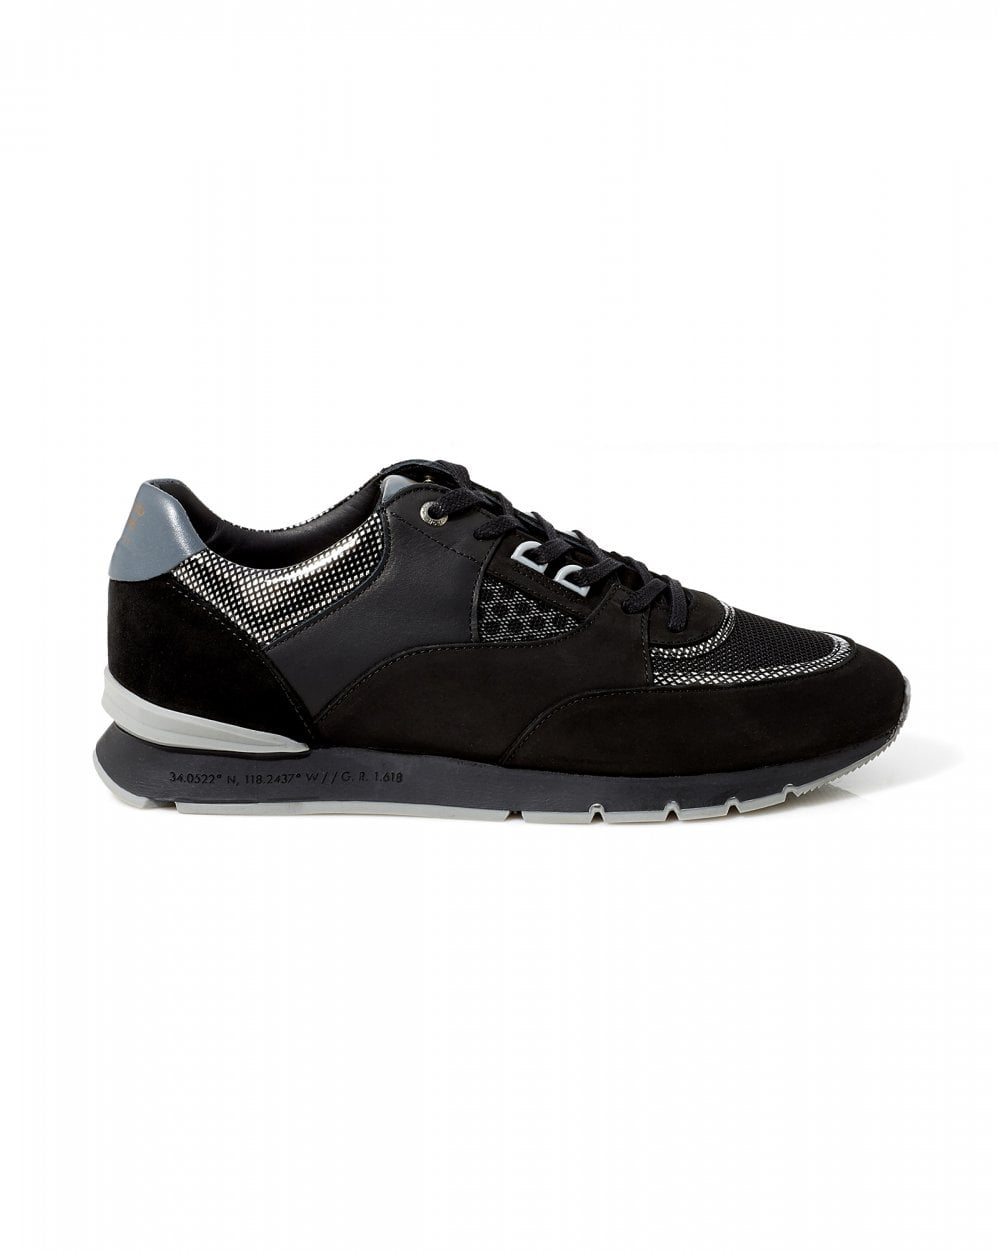 Mens Belter 2.0 Trainers, Black Silver Gloss Carbon Sneakers